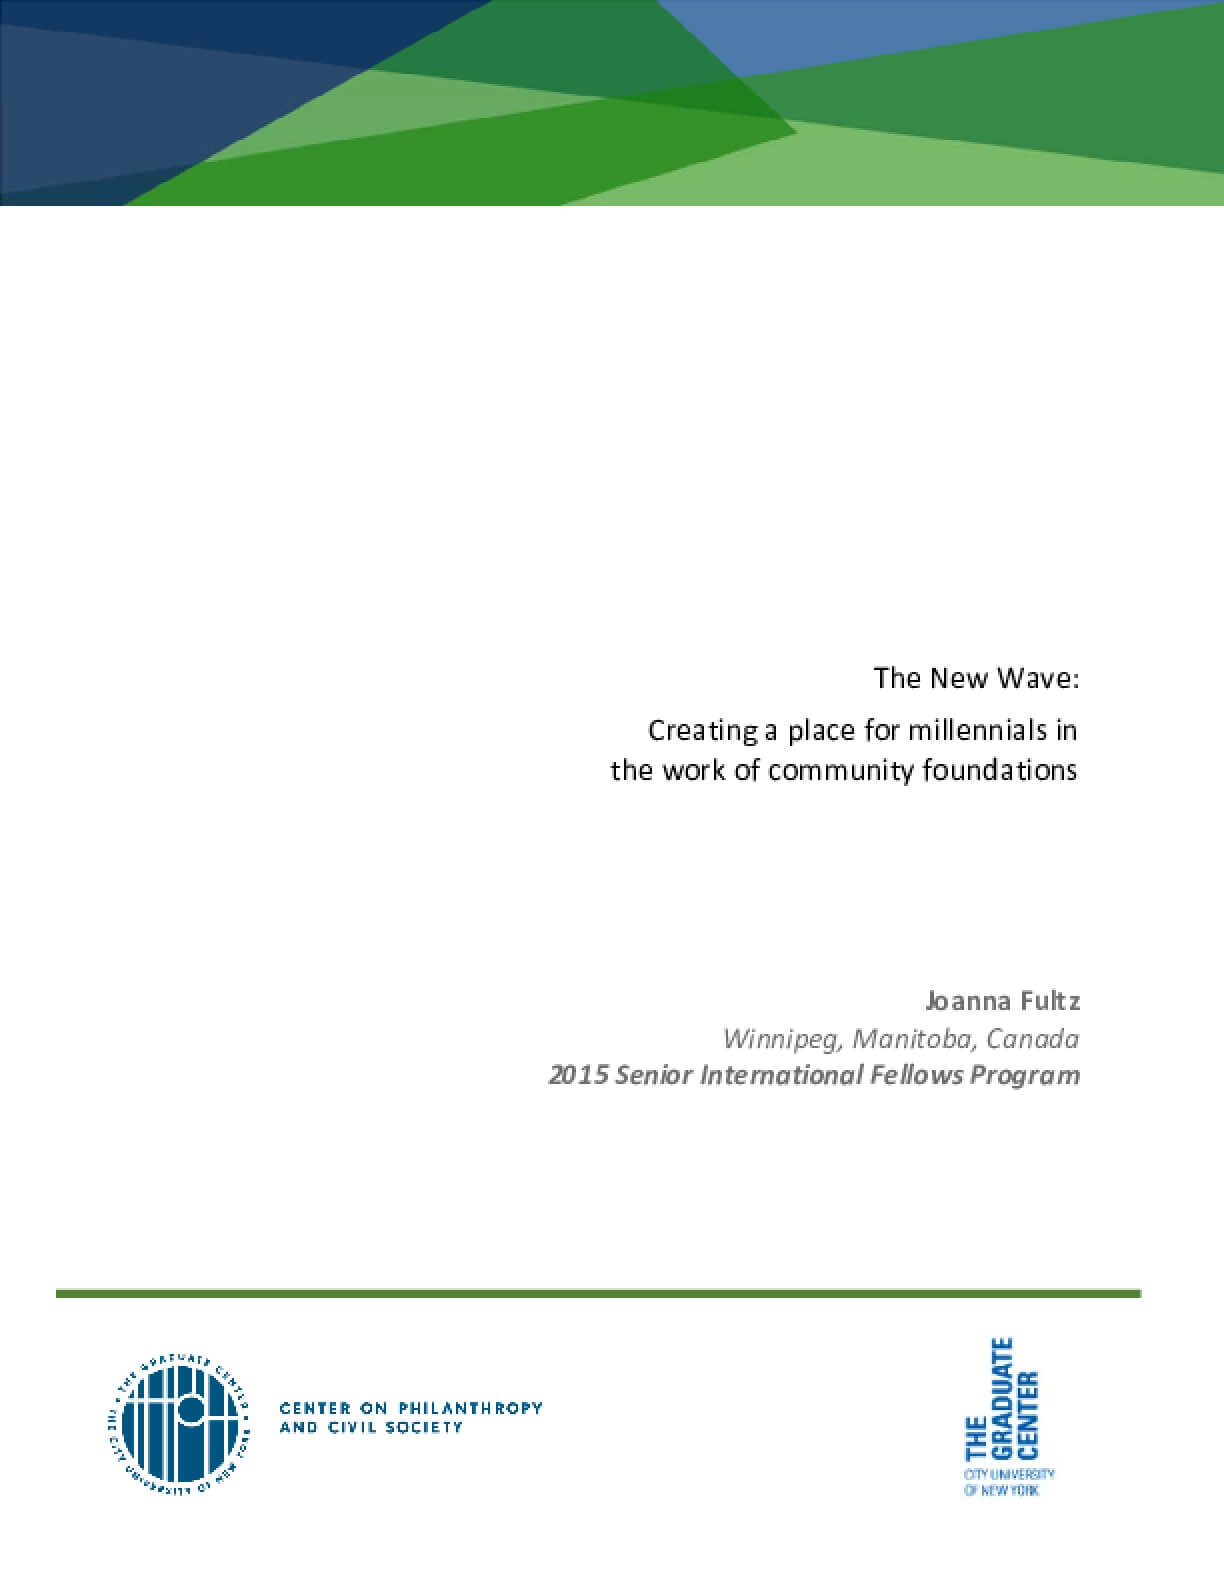 The New Wave: Creating a place for millennials in the work of community foundations